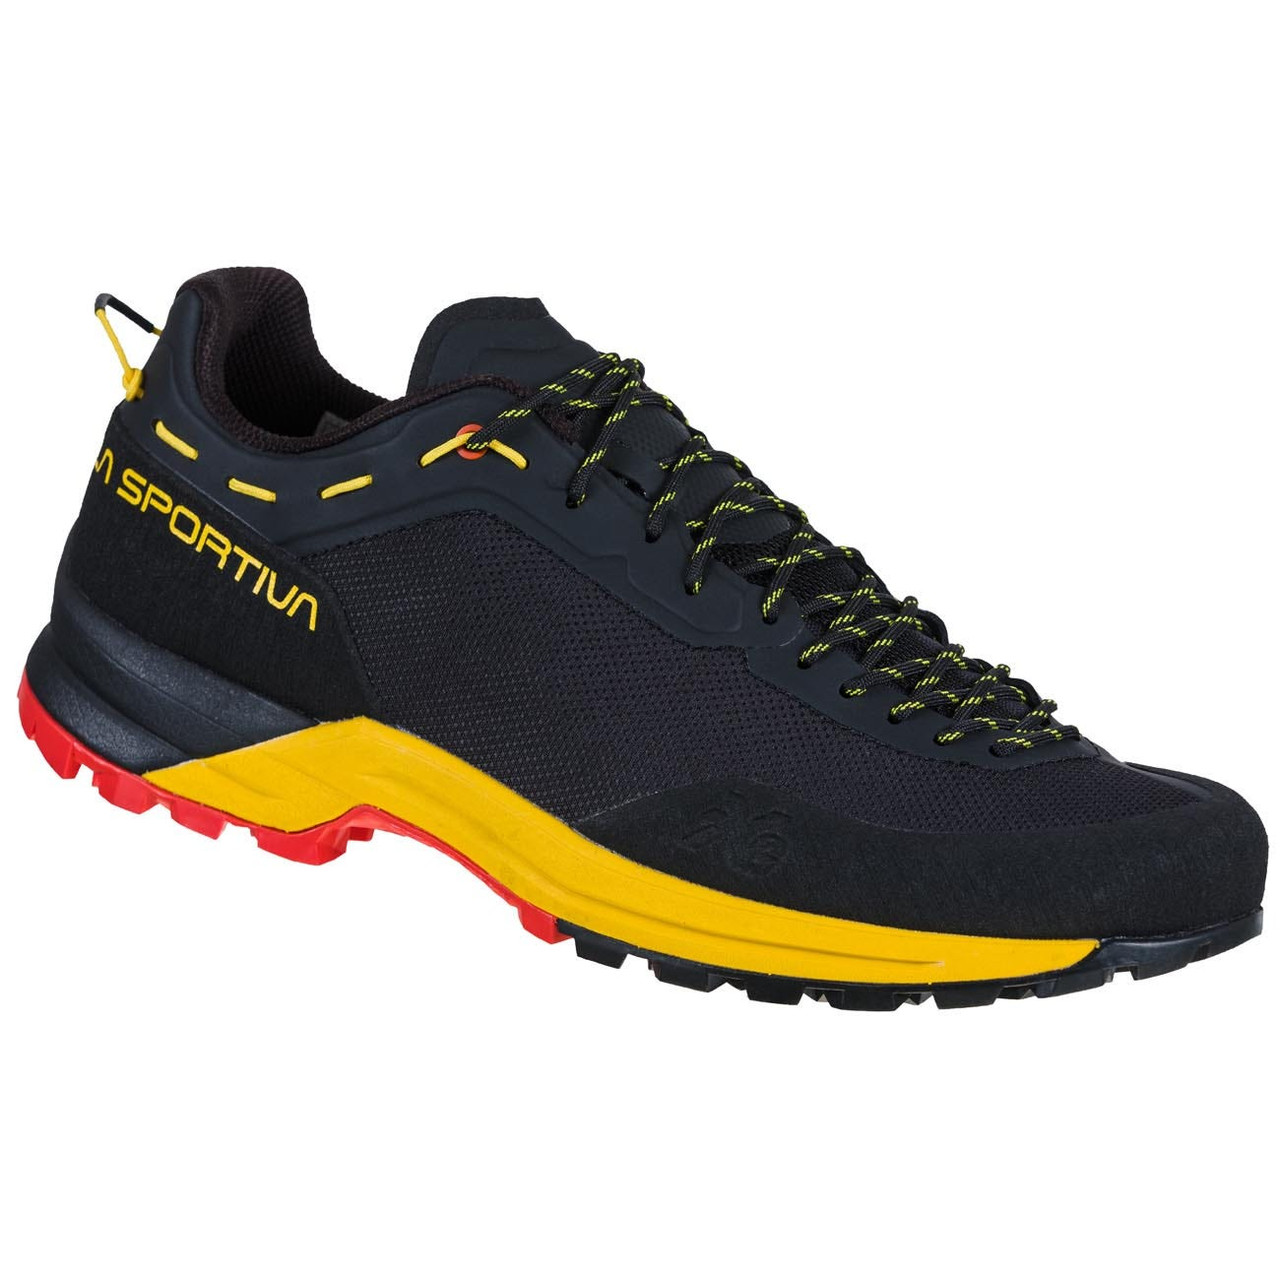 La Sportiva TX Guide - Men's Approach Shoe Side Online at Mountain Mail Order South Africa